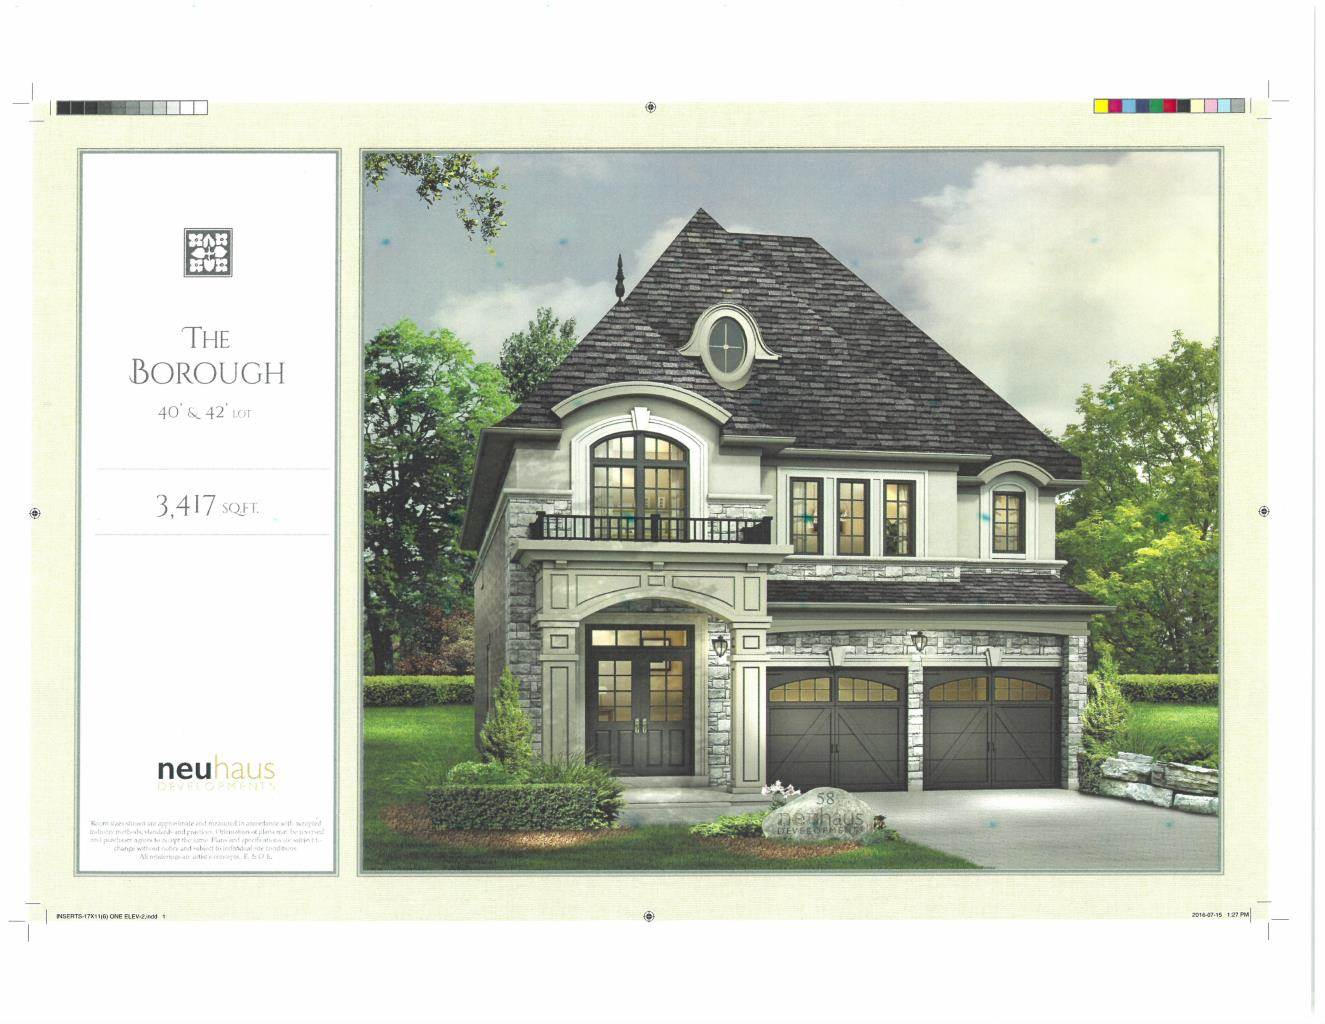 Residencial à venda em BRAND NEW Custom Home in Richmond Hill (3,417 sq.ft), RICHMOND HILL, Ontario ,L4C 4M3  , Canadá